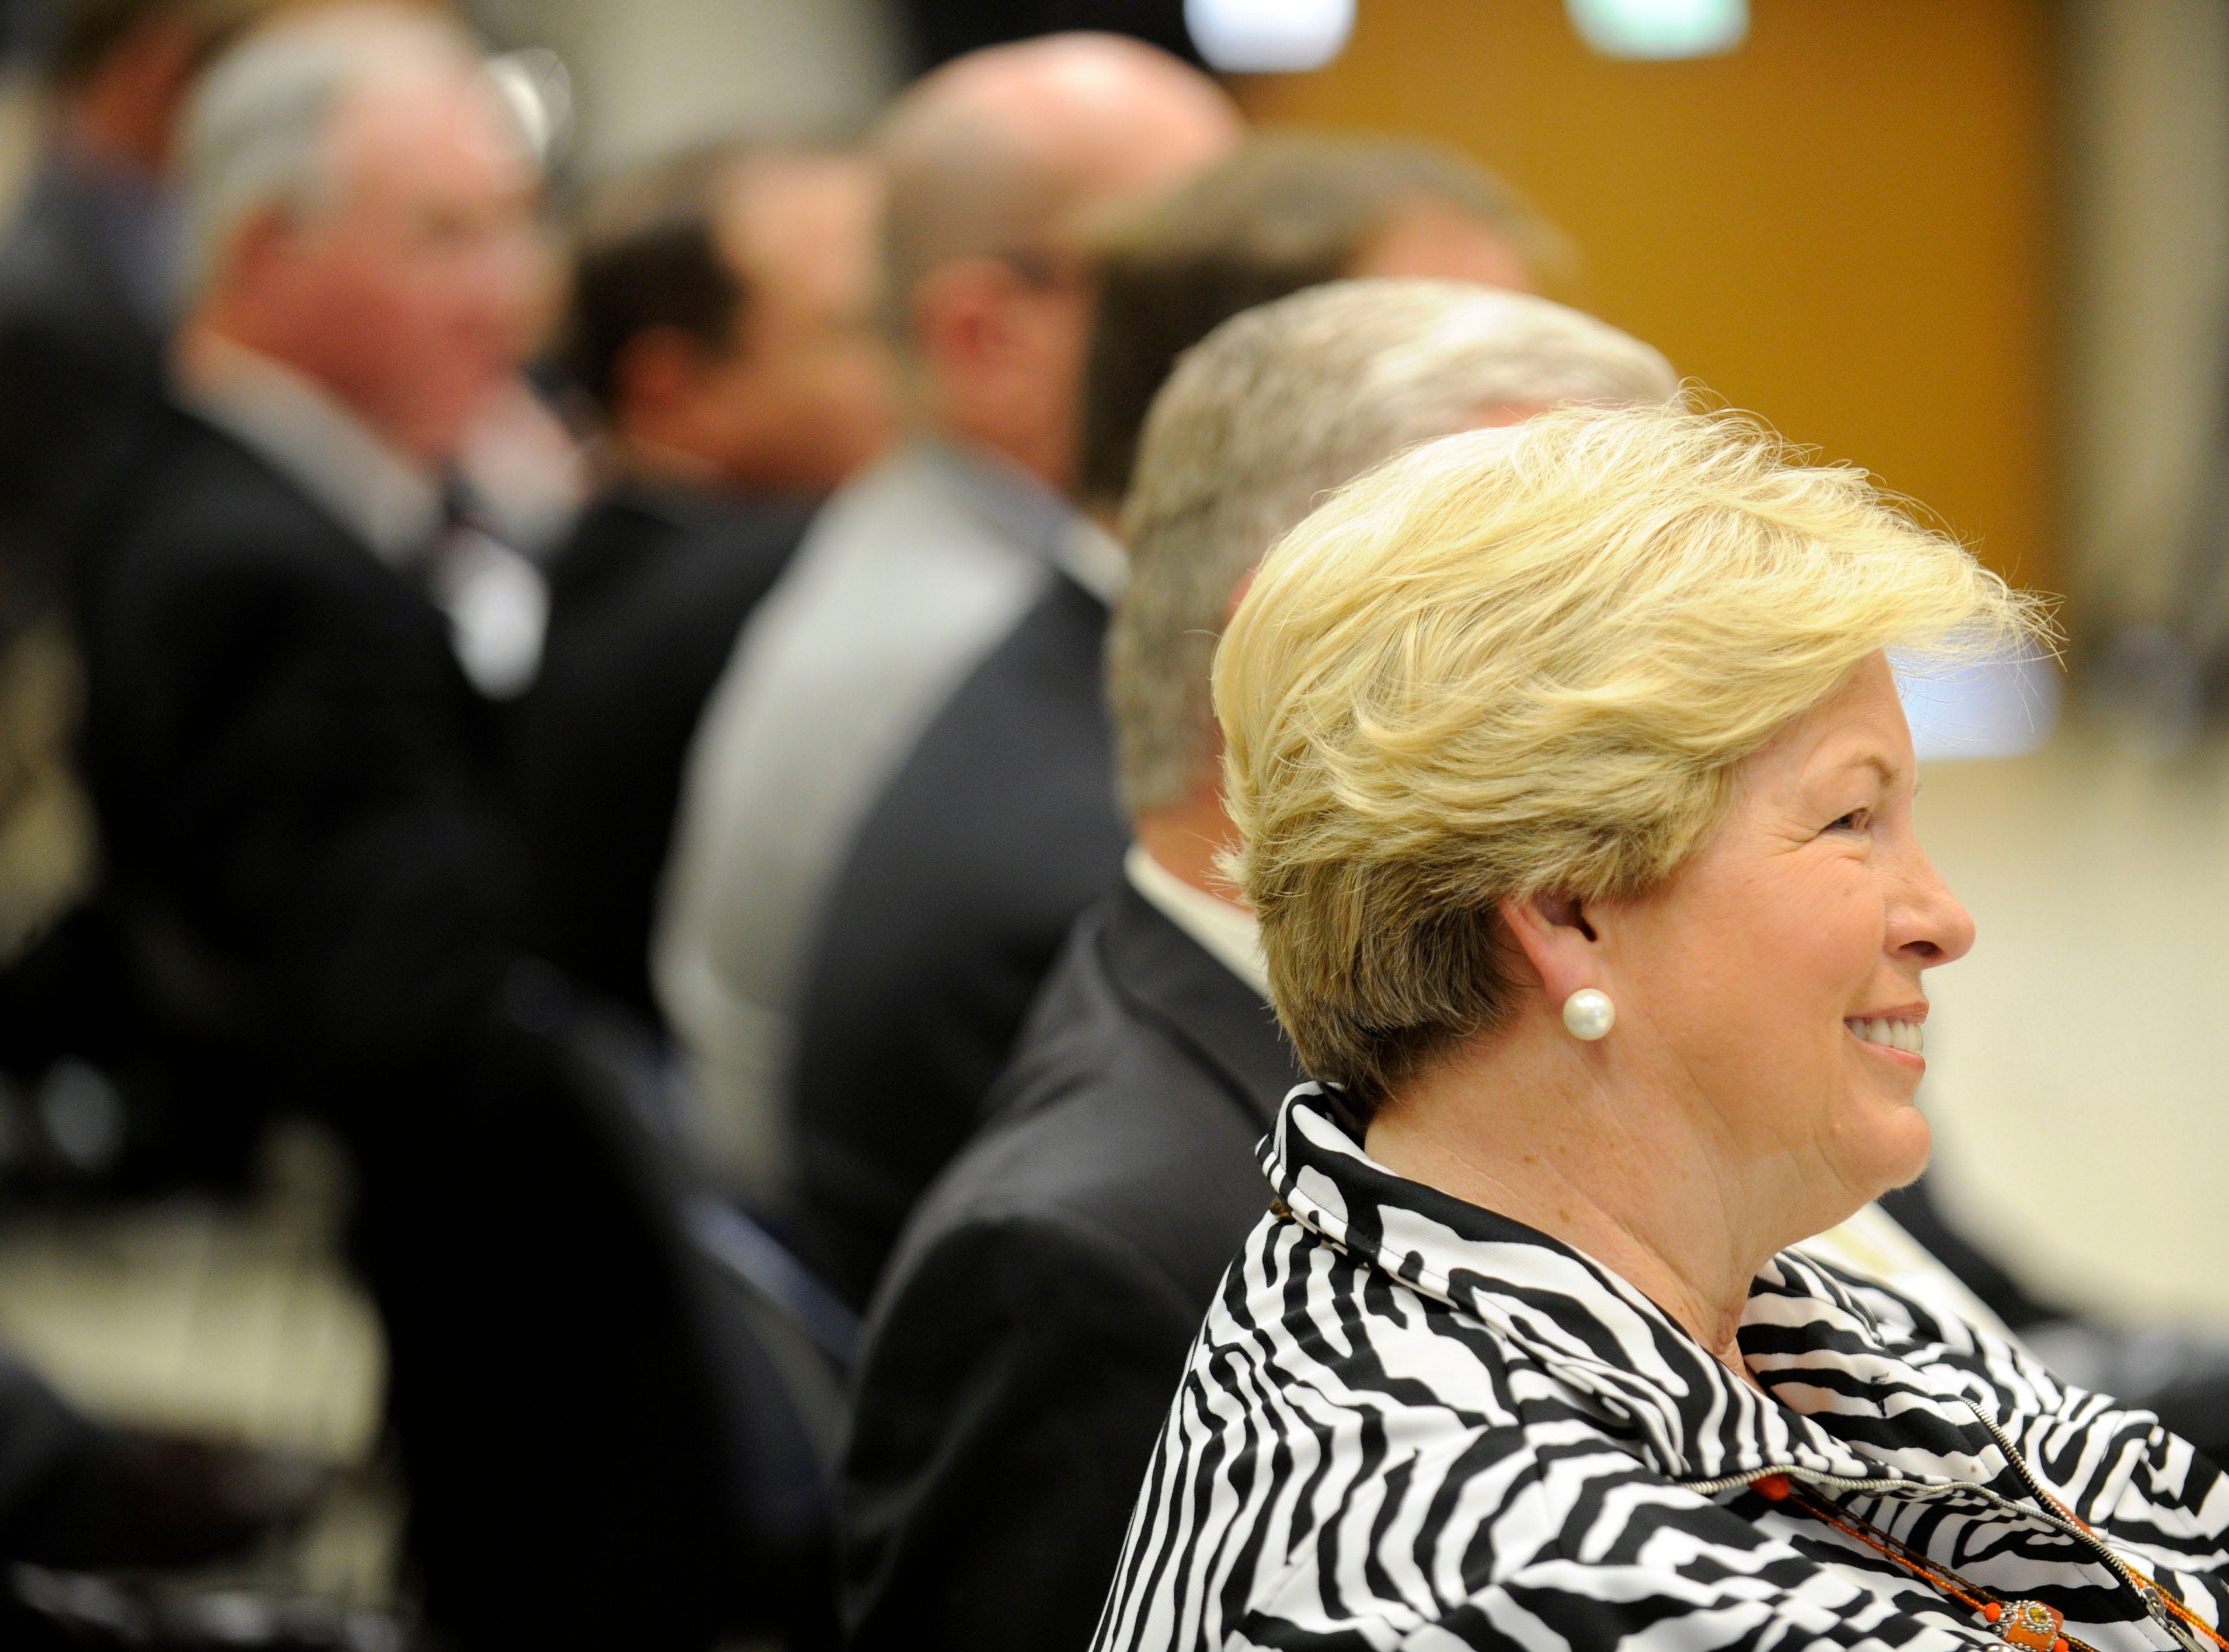 Joan Cronan is recognized as emeritus vice chancellor and director of athletics, and women's athletics director, during the annual University of Tennessee board of trustees meeting on Thursday, June 21, 2012. Members  voted on the annual budget and an 8 percent tuition increase in Knoxville to cover fixed costs, salary increases and academic initiatives.